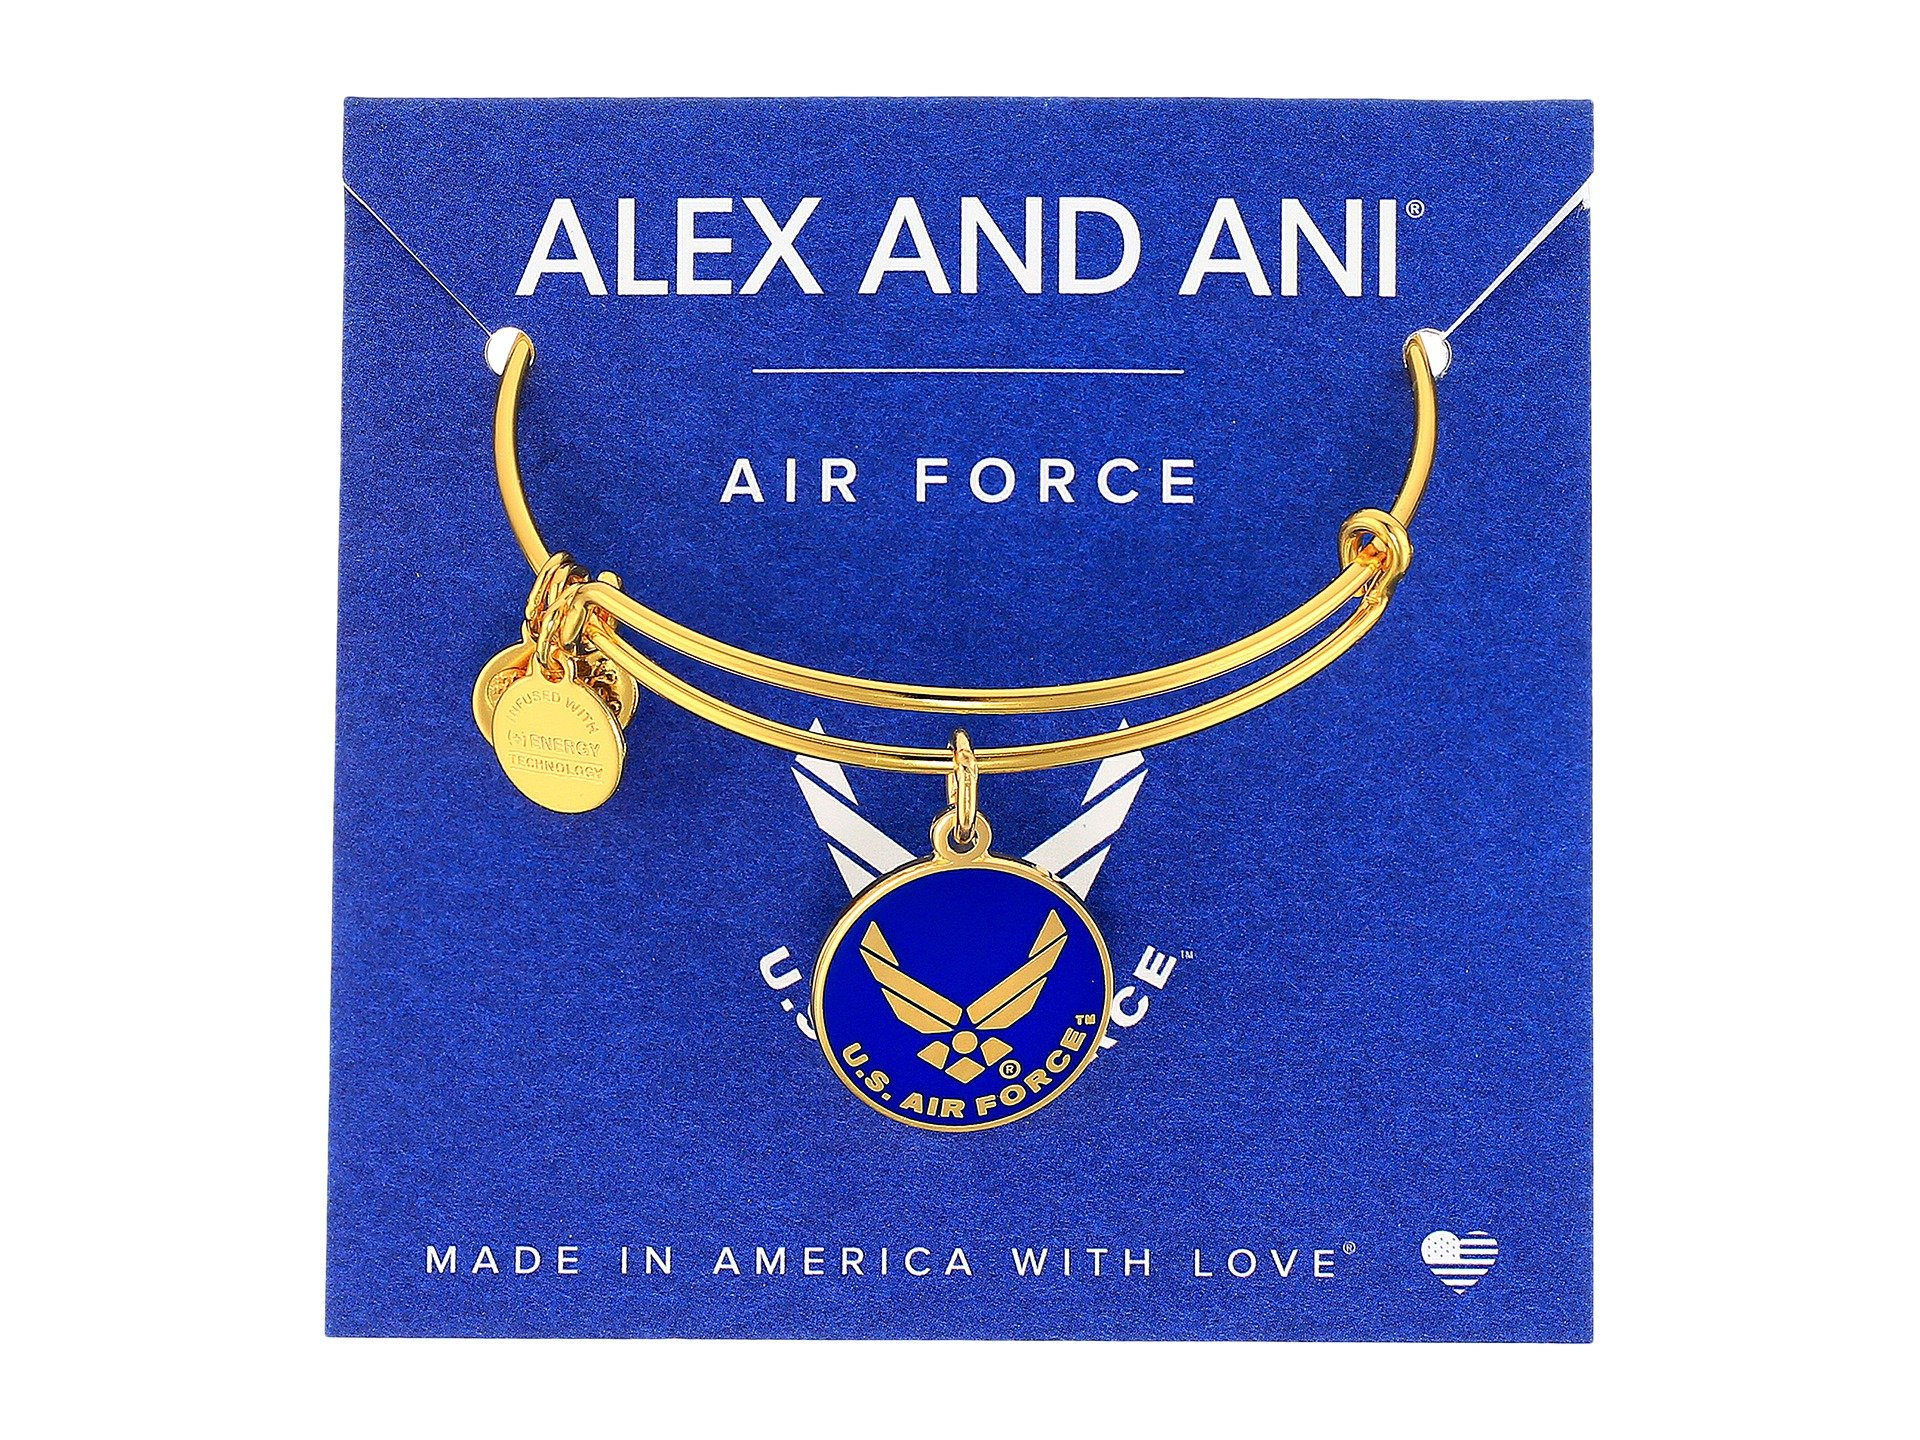 Alex and ani us air force at zappos main nvjuhfo Choice Image